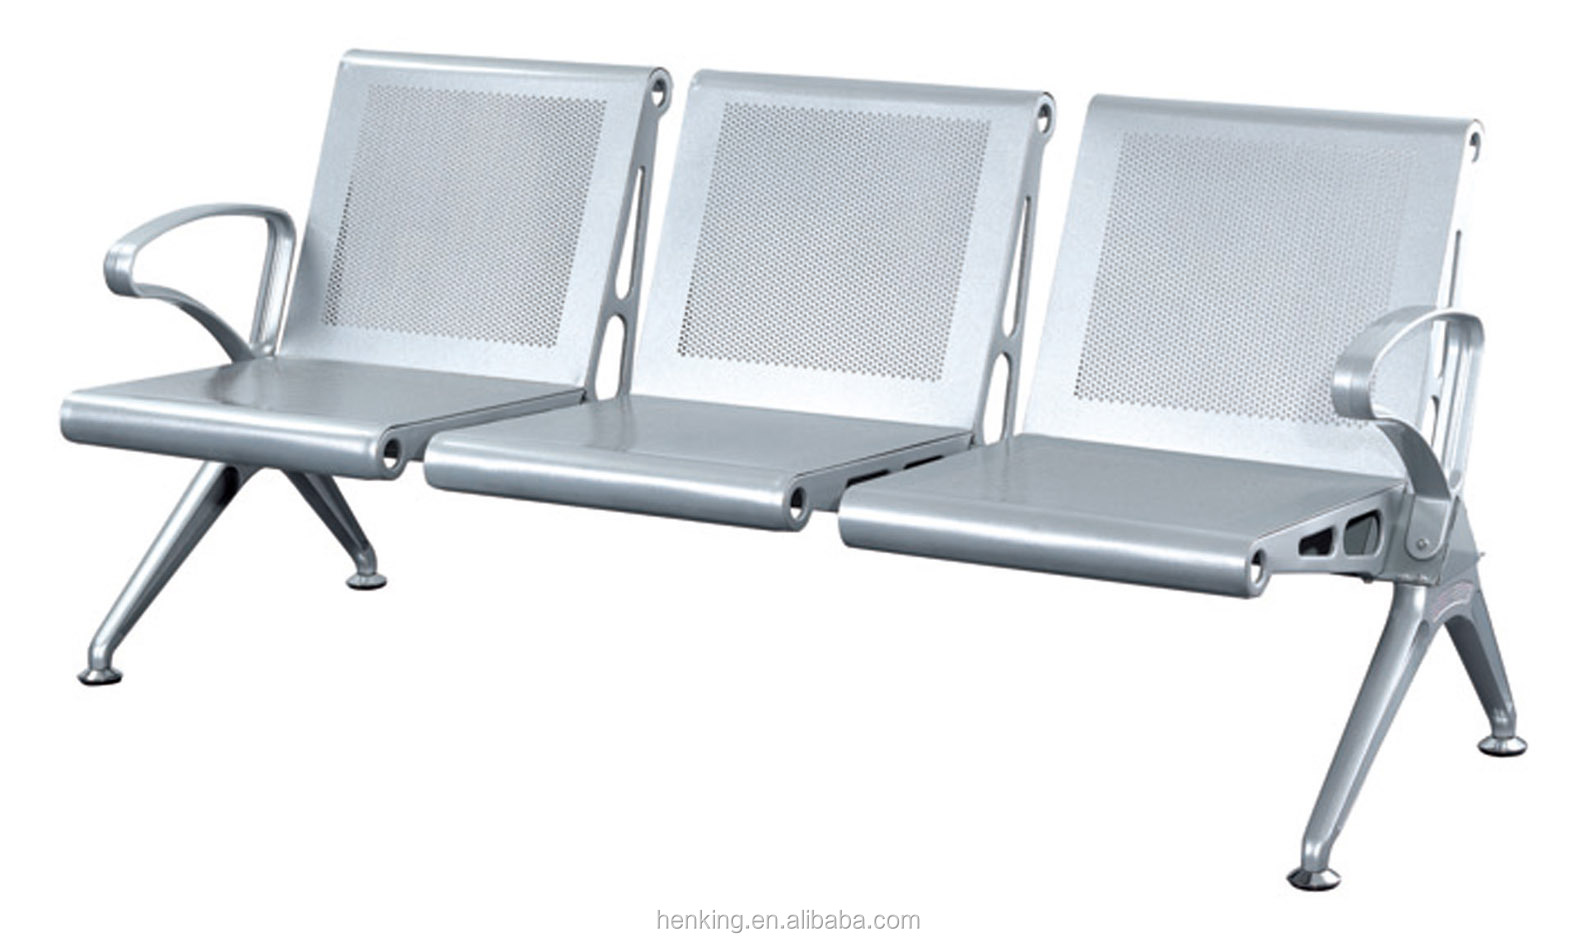 Airport Furniture For Sale